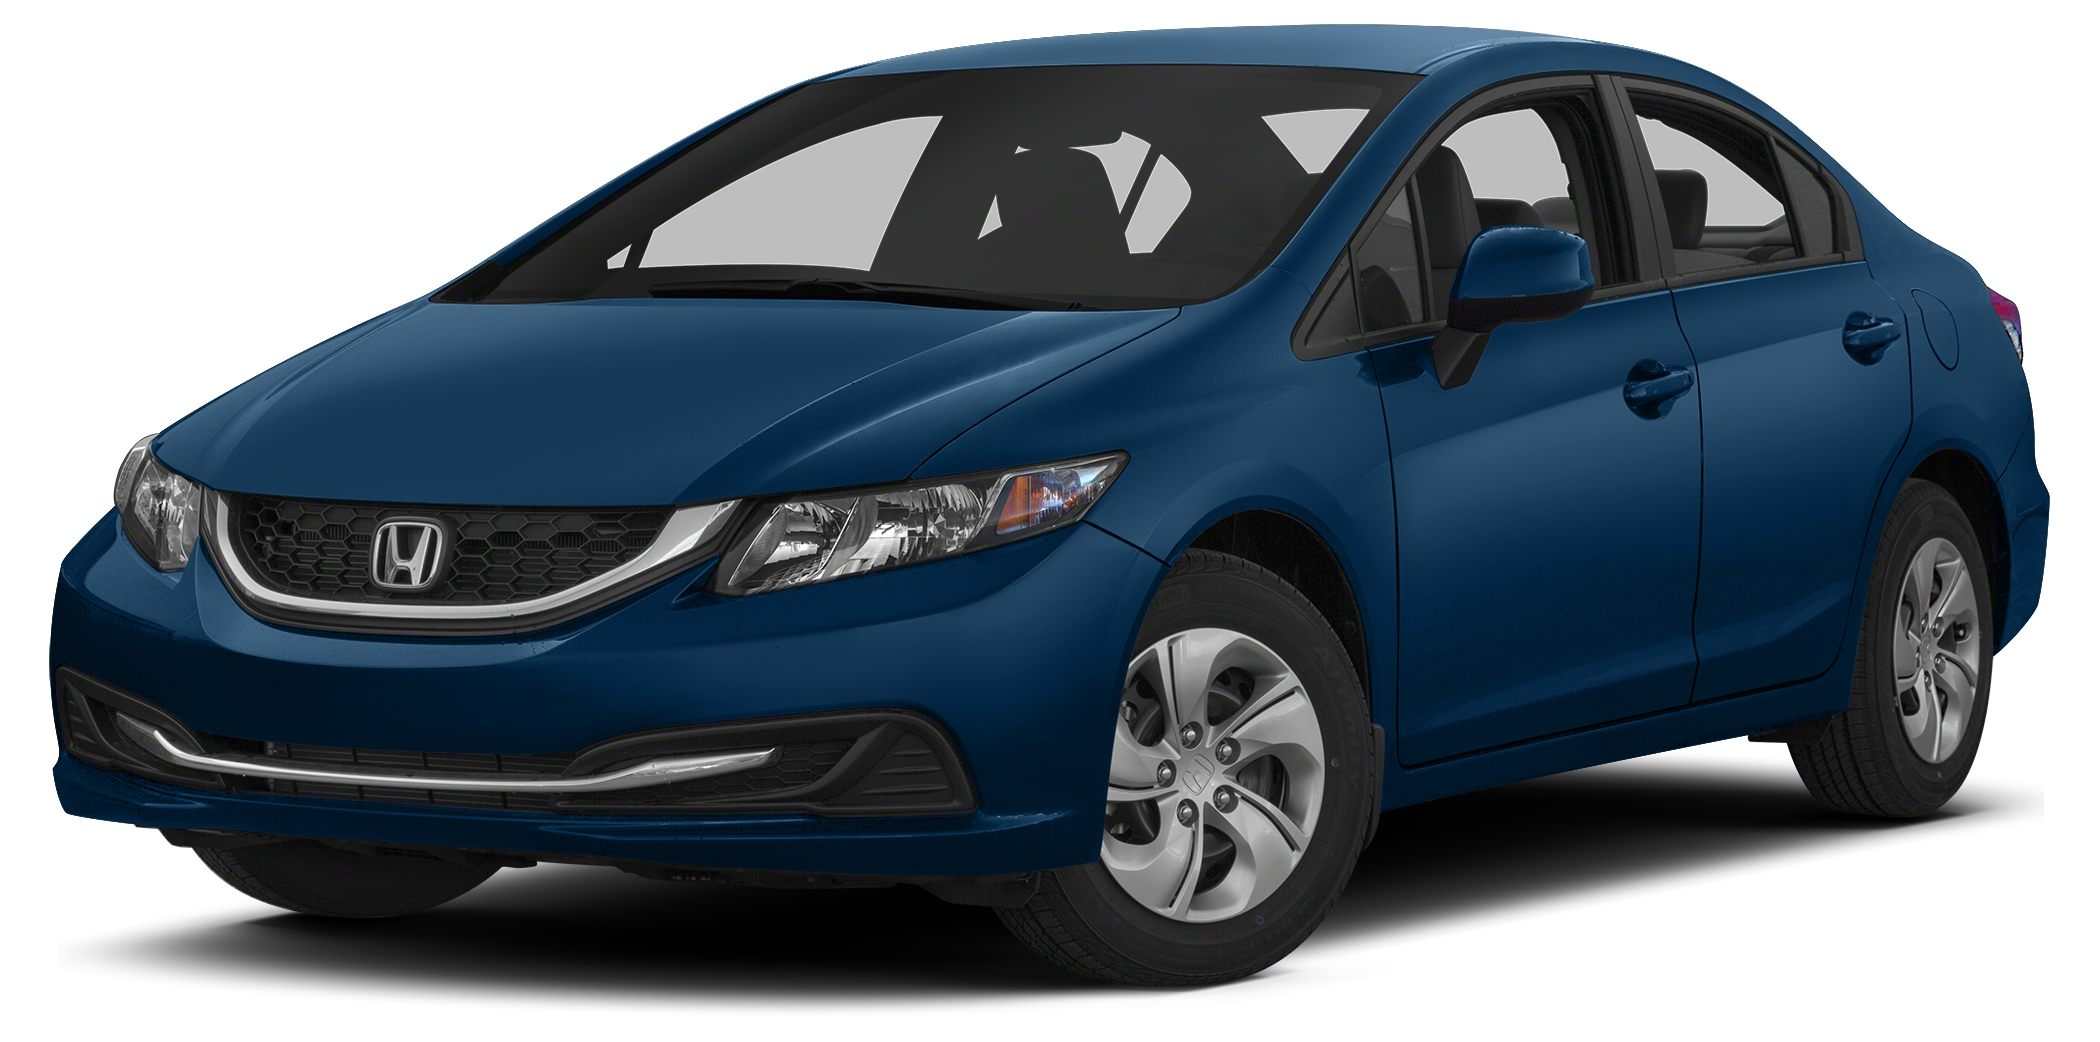 2013 Honda Civic LX Miles 37552Color Dyno Blue Pearl Stock 8622 VIN 2HGFB2F54DH509269